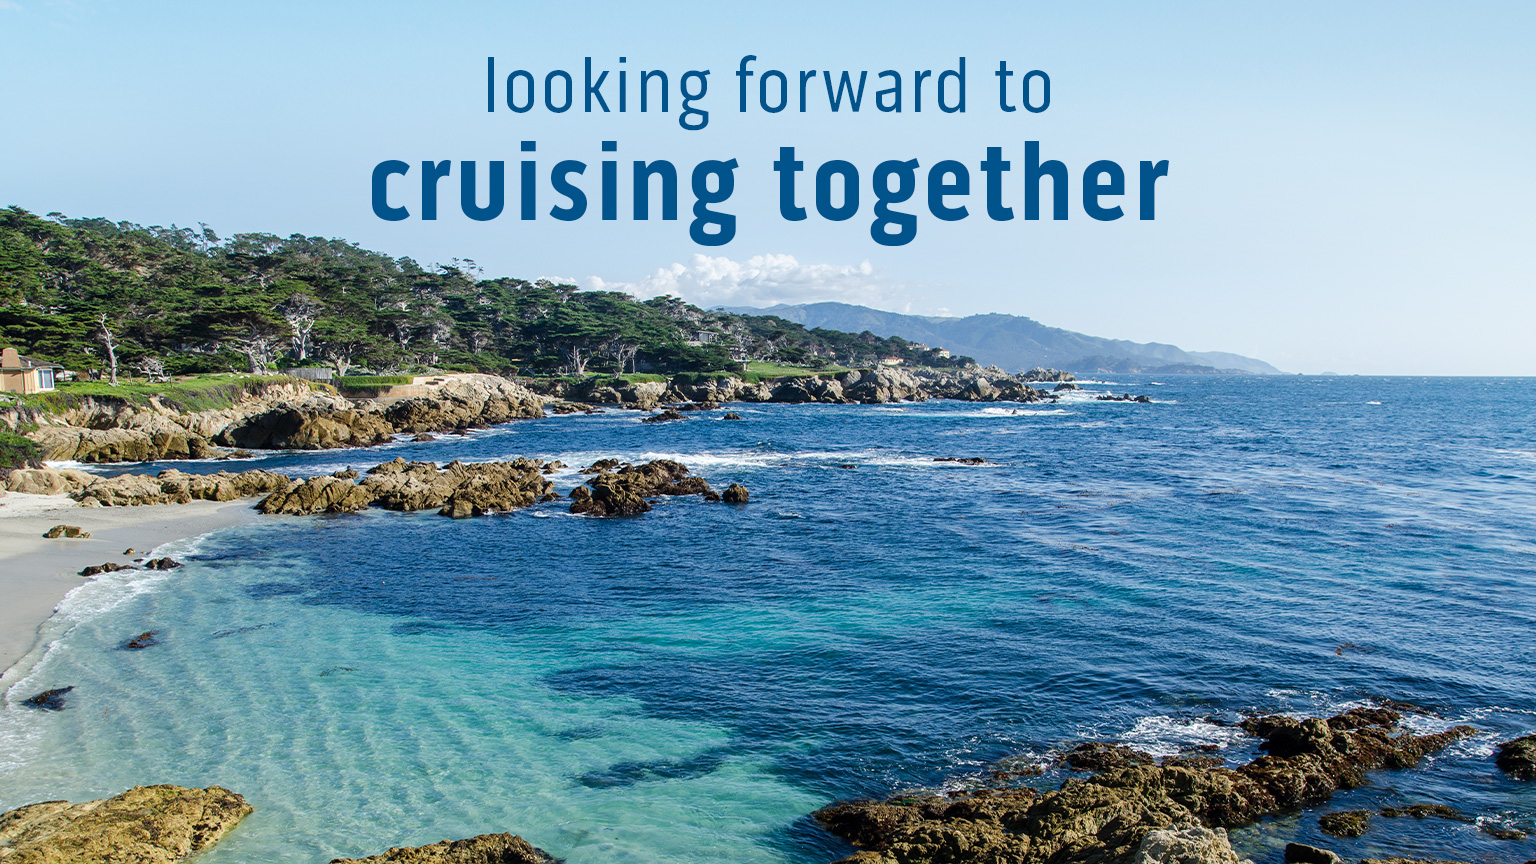 Dreaming of your next Princess cruise?